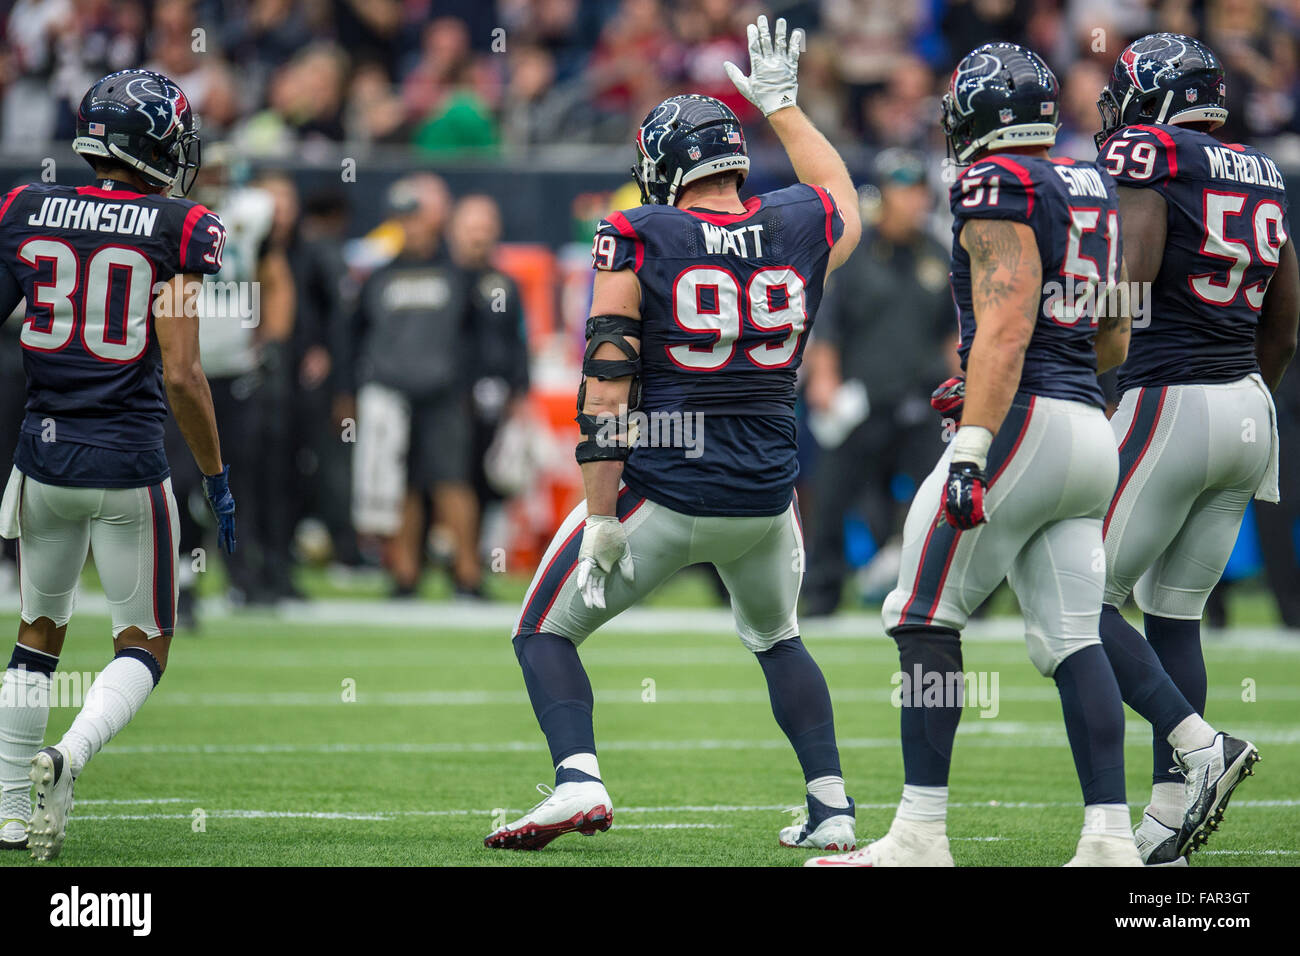 Jj Watt Sack Dance